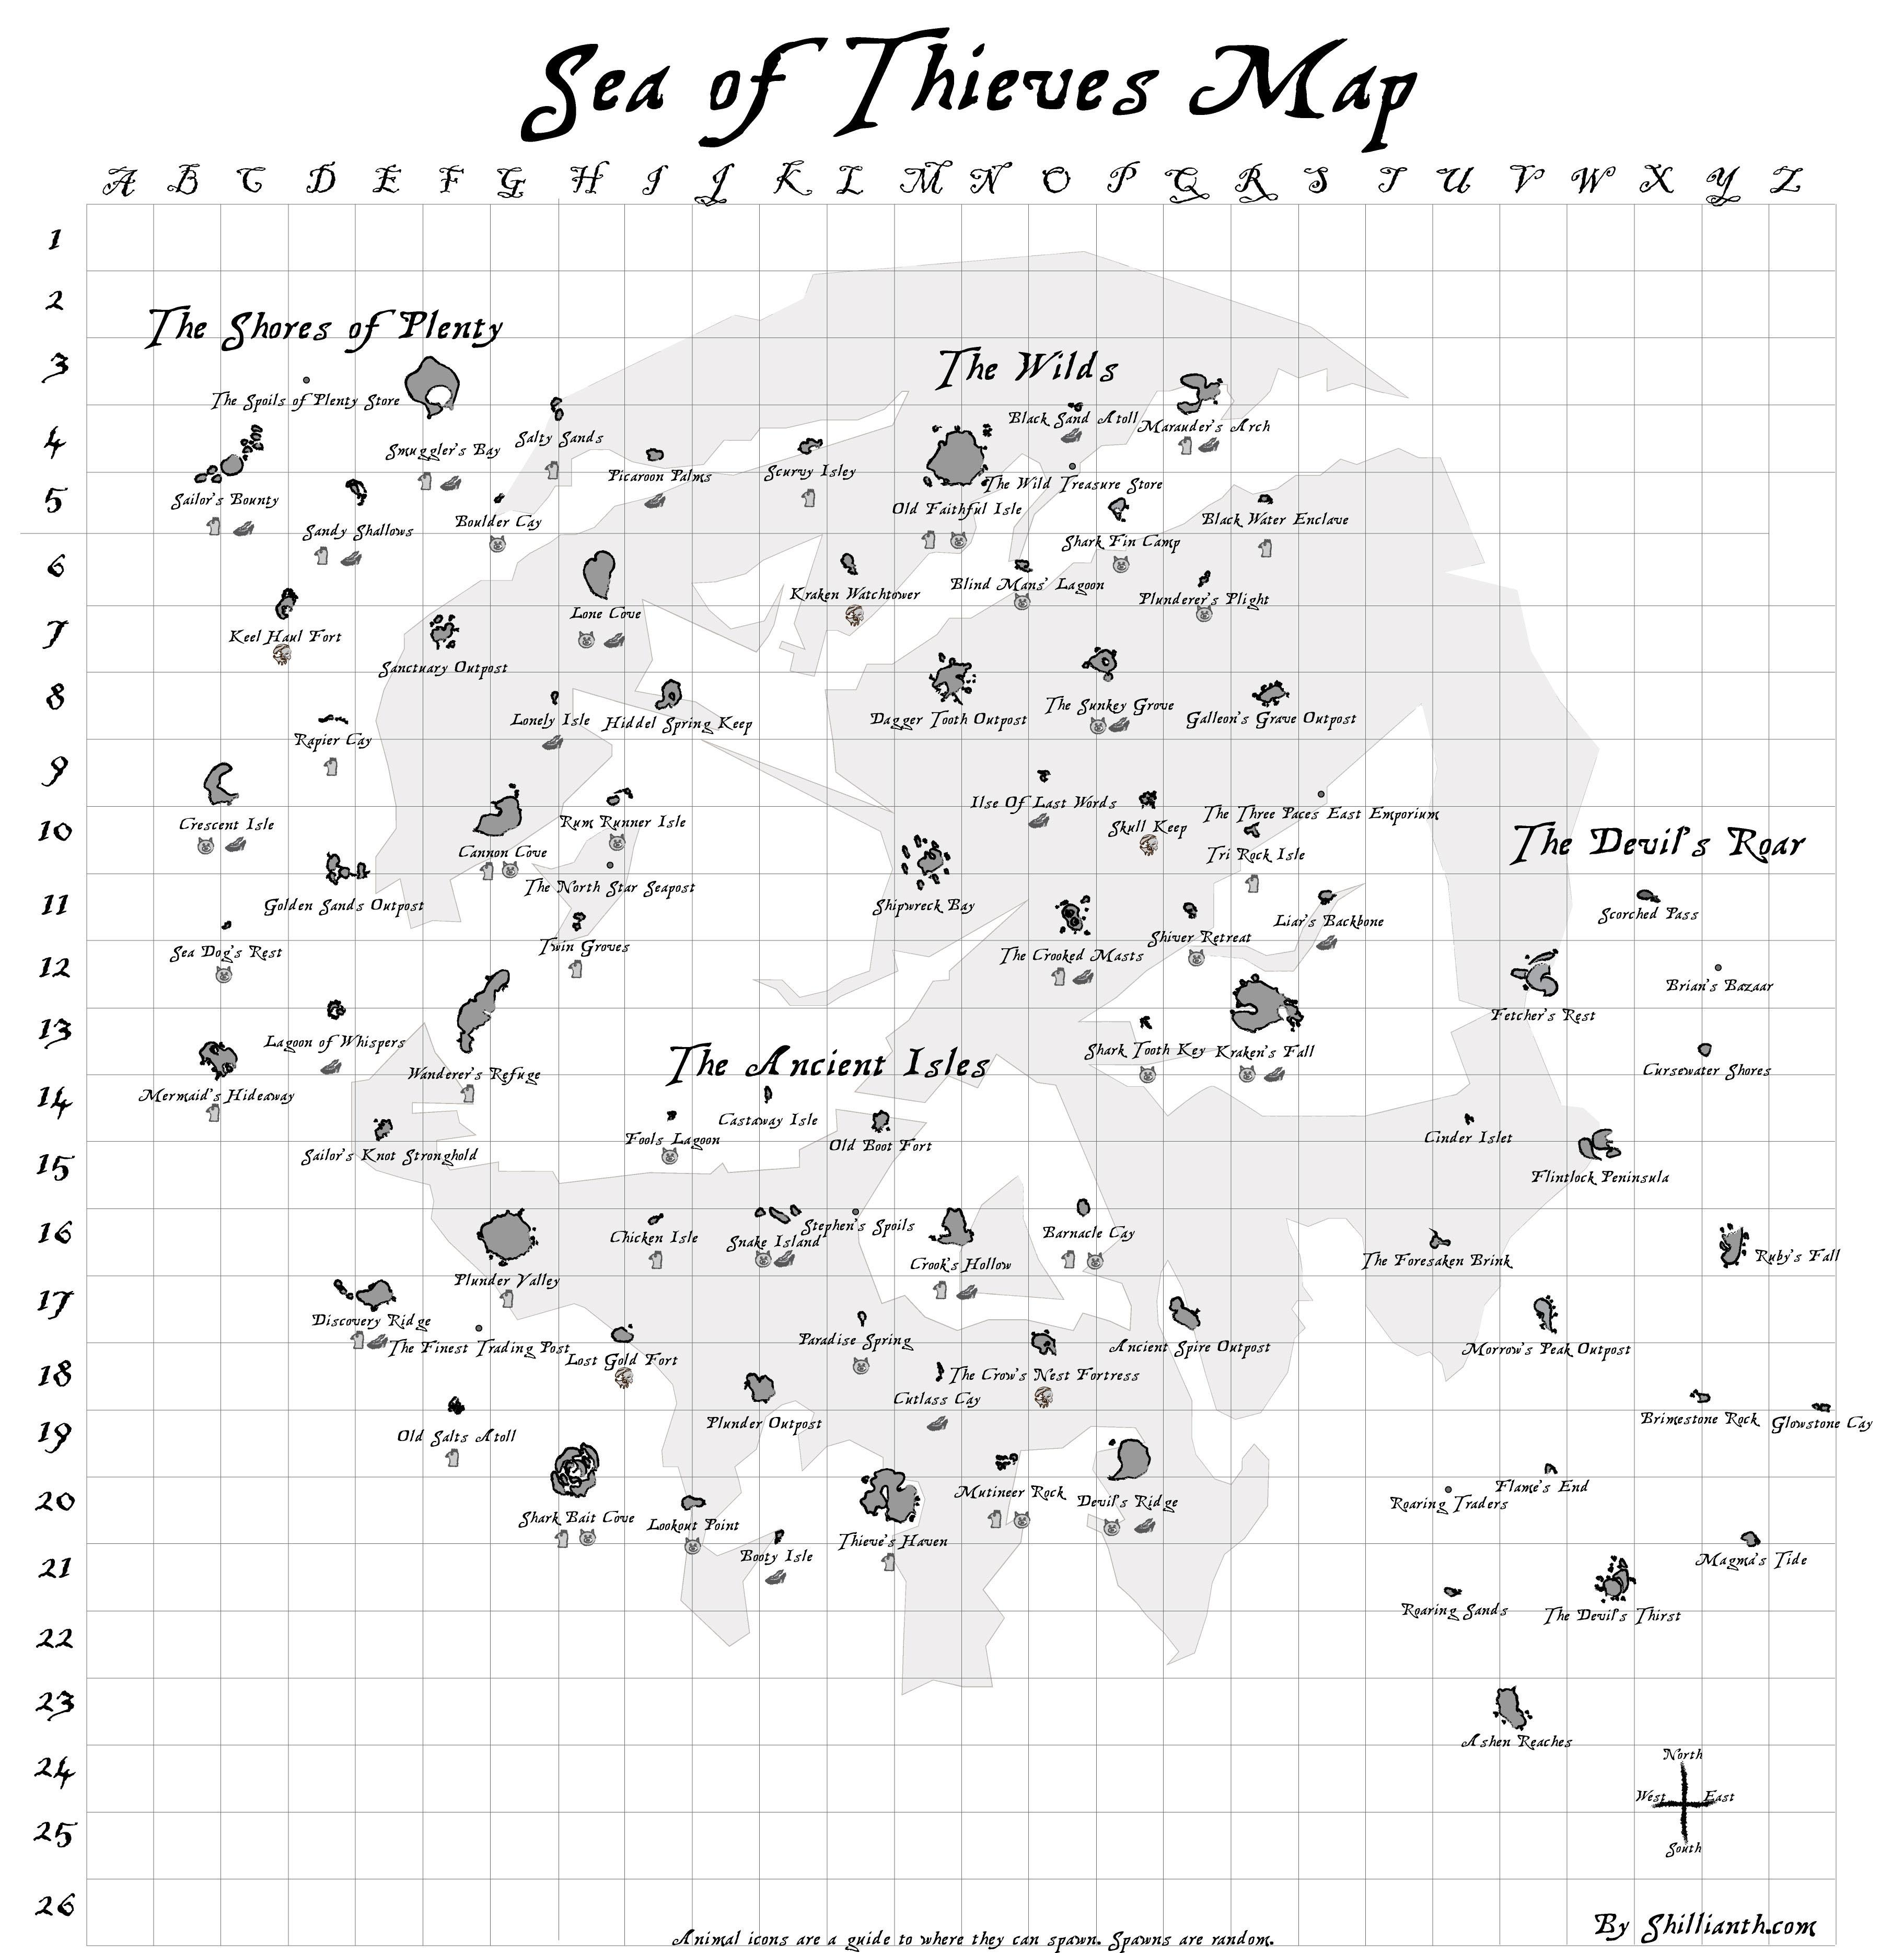 Updated Map Seaofthieves